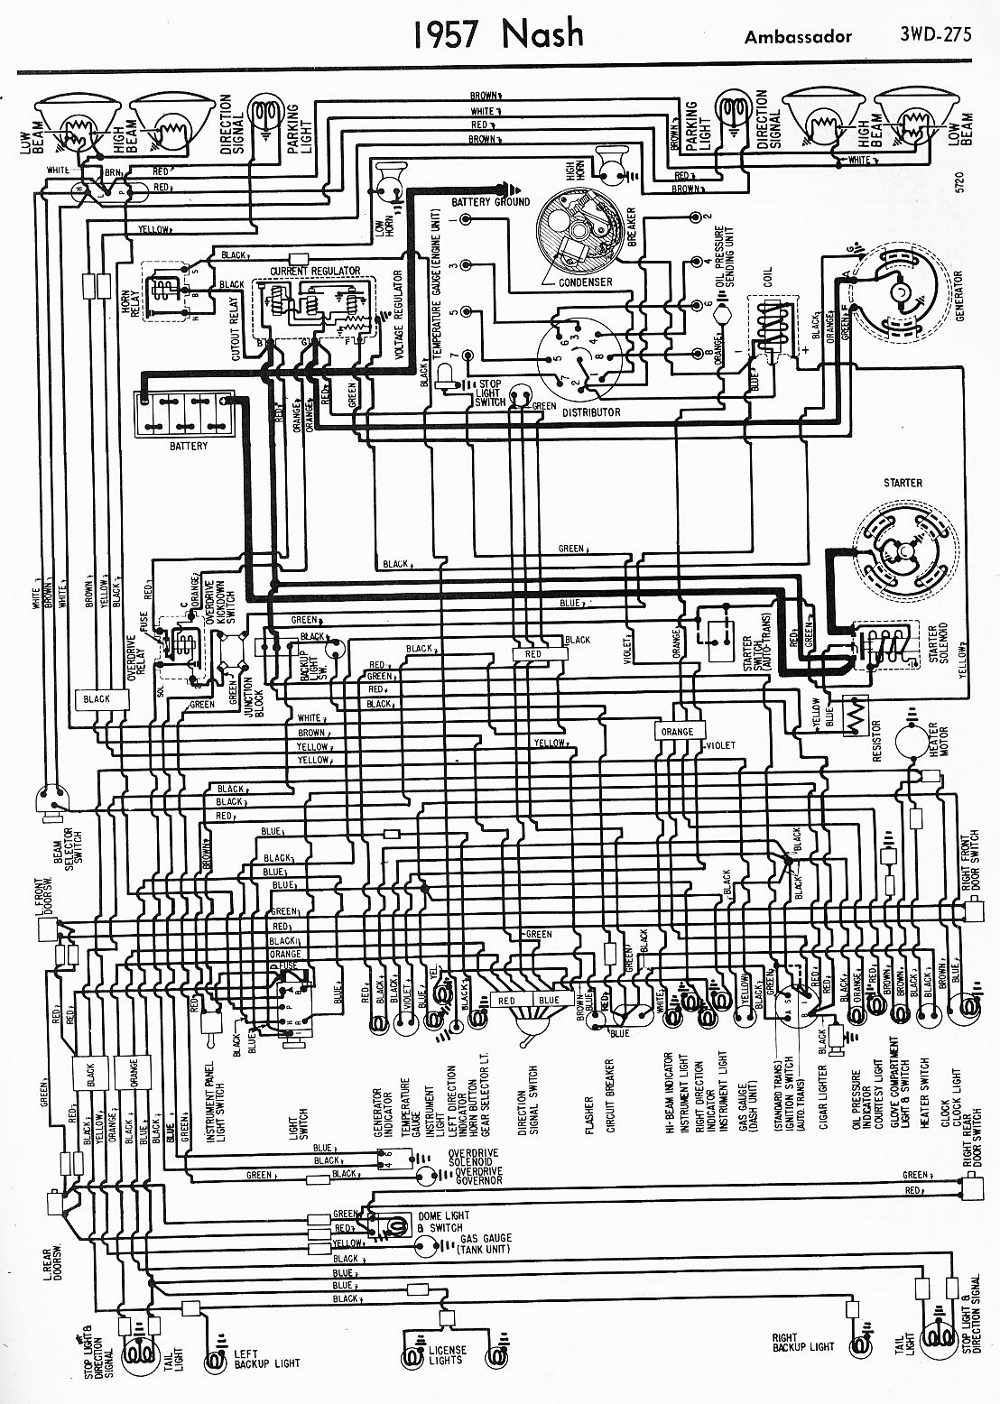 Manow06201101 Ns2 Name Fiat Stilo Instrument Cluster Wiring Diagram